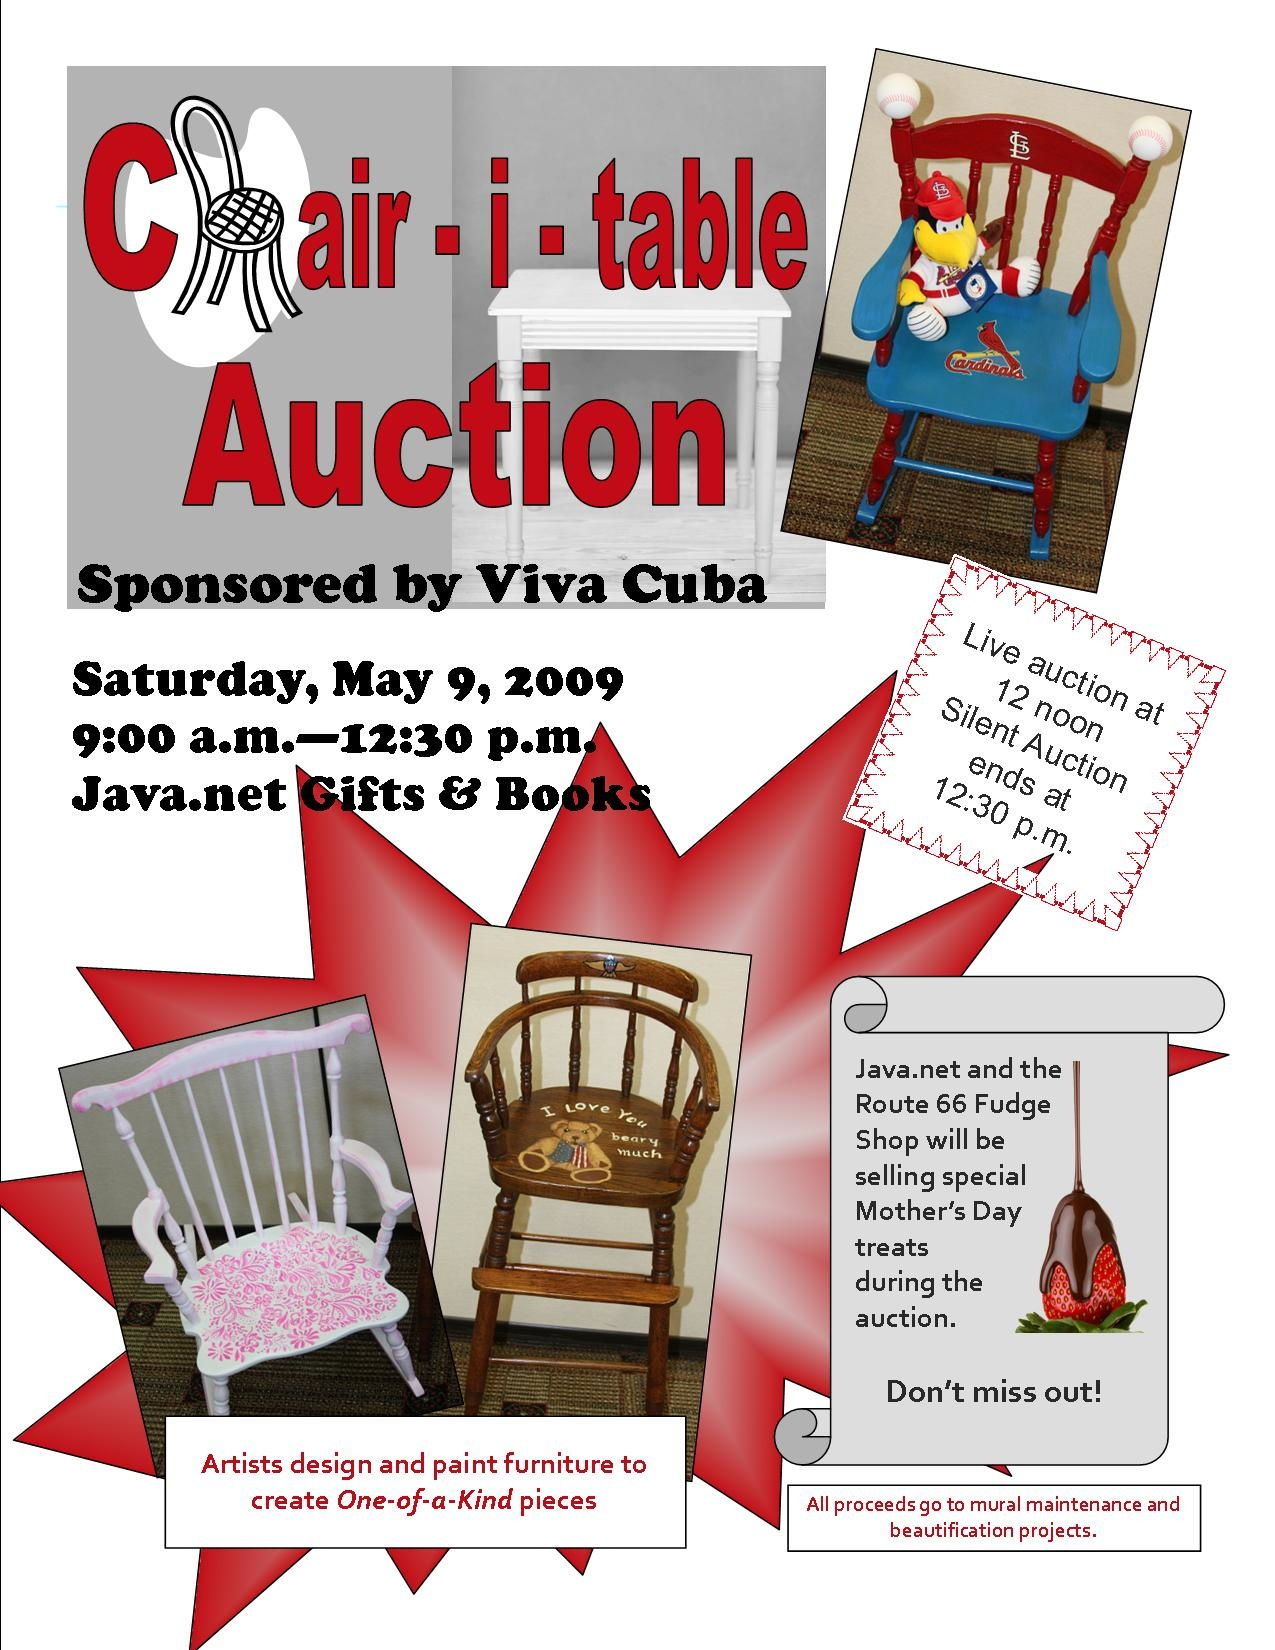 chair-i-table-auction-flyer-2009 - Cuba, MO - Route 66 Mural